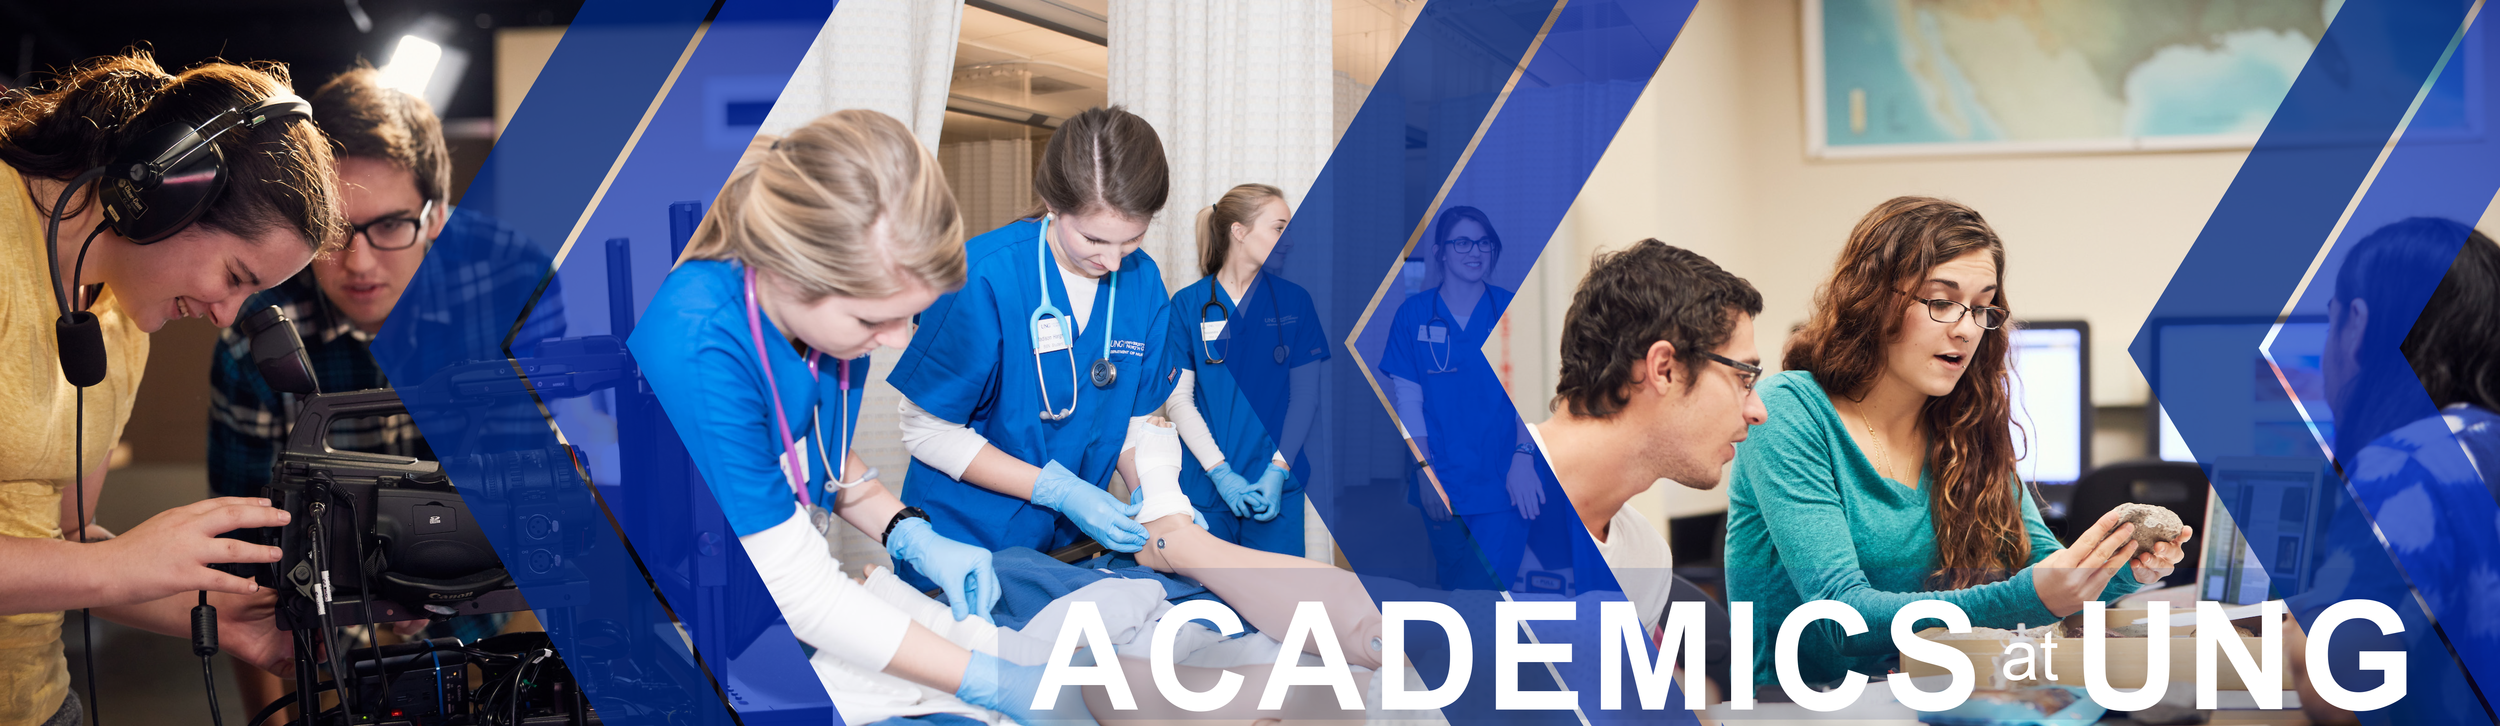 Colleges of the University of North Georgia page banner: Features Image 1: Film students working with a camera. Image 2: Nursing students learning how to bandage a foot. Image 3: Geography students examining a rock.